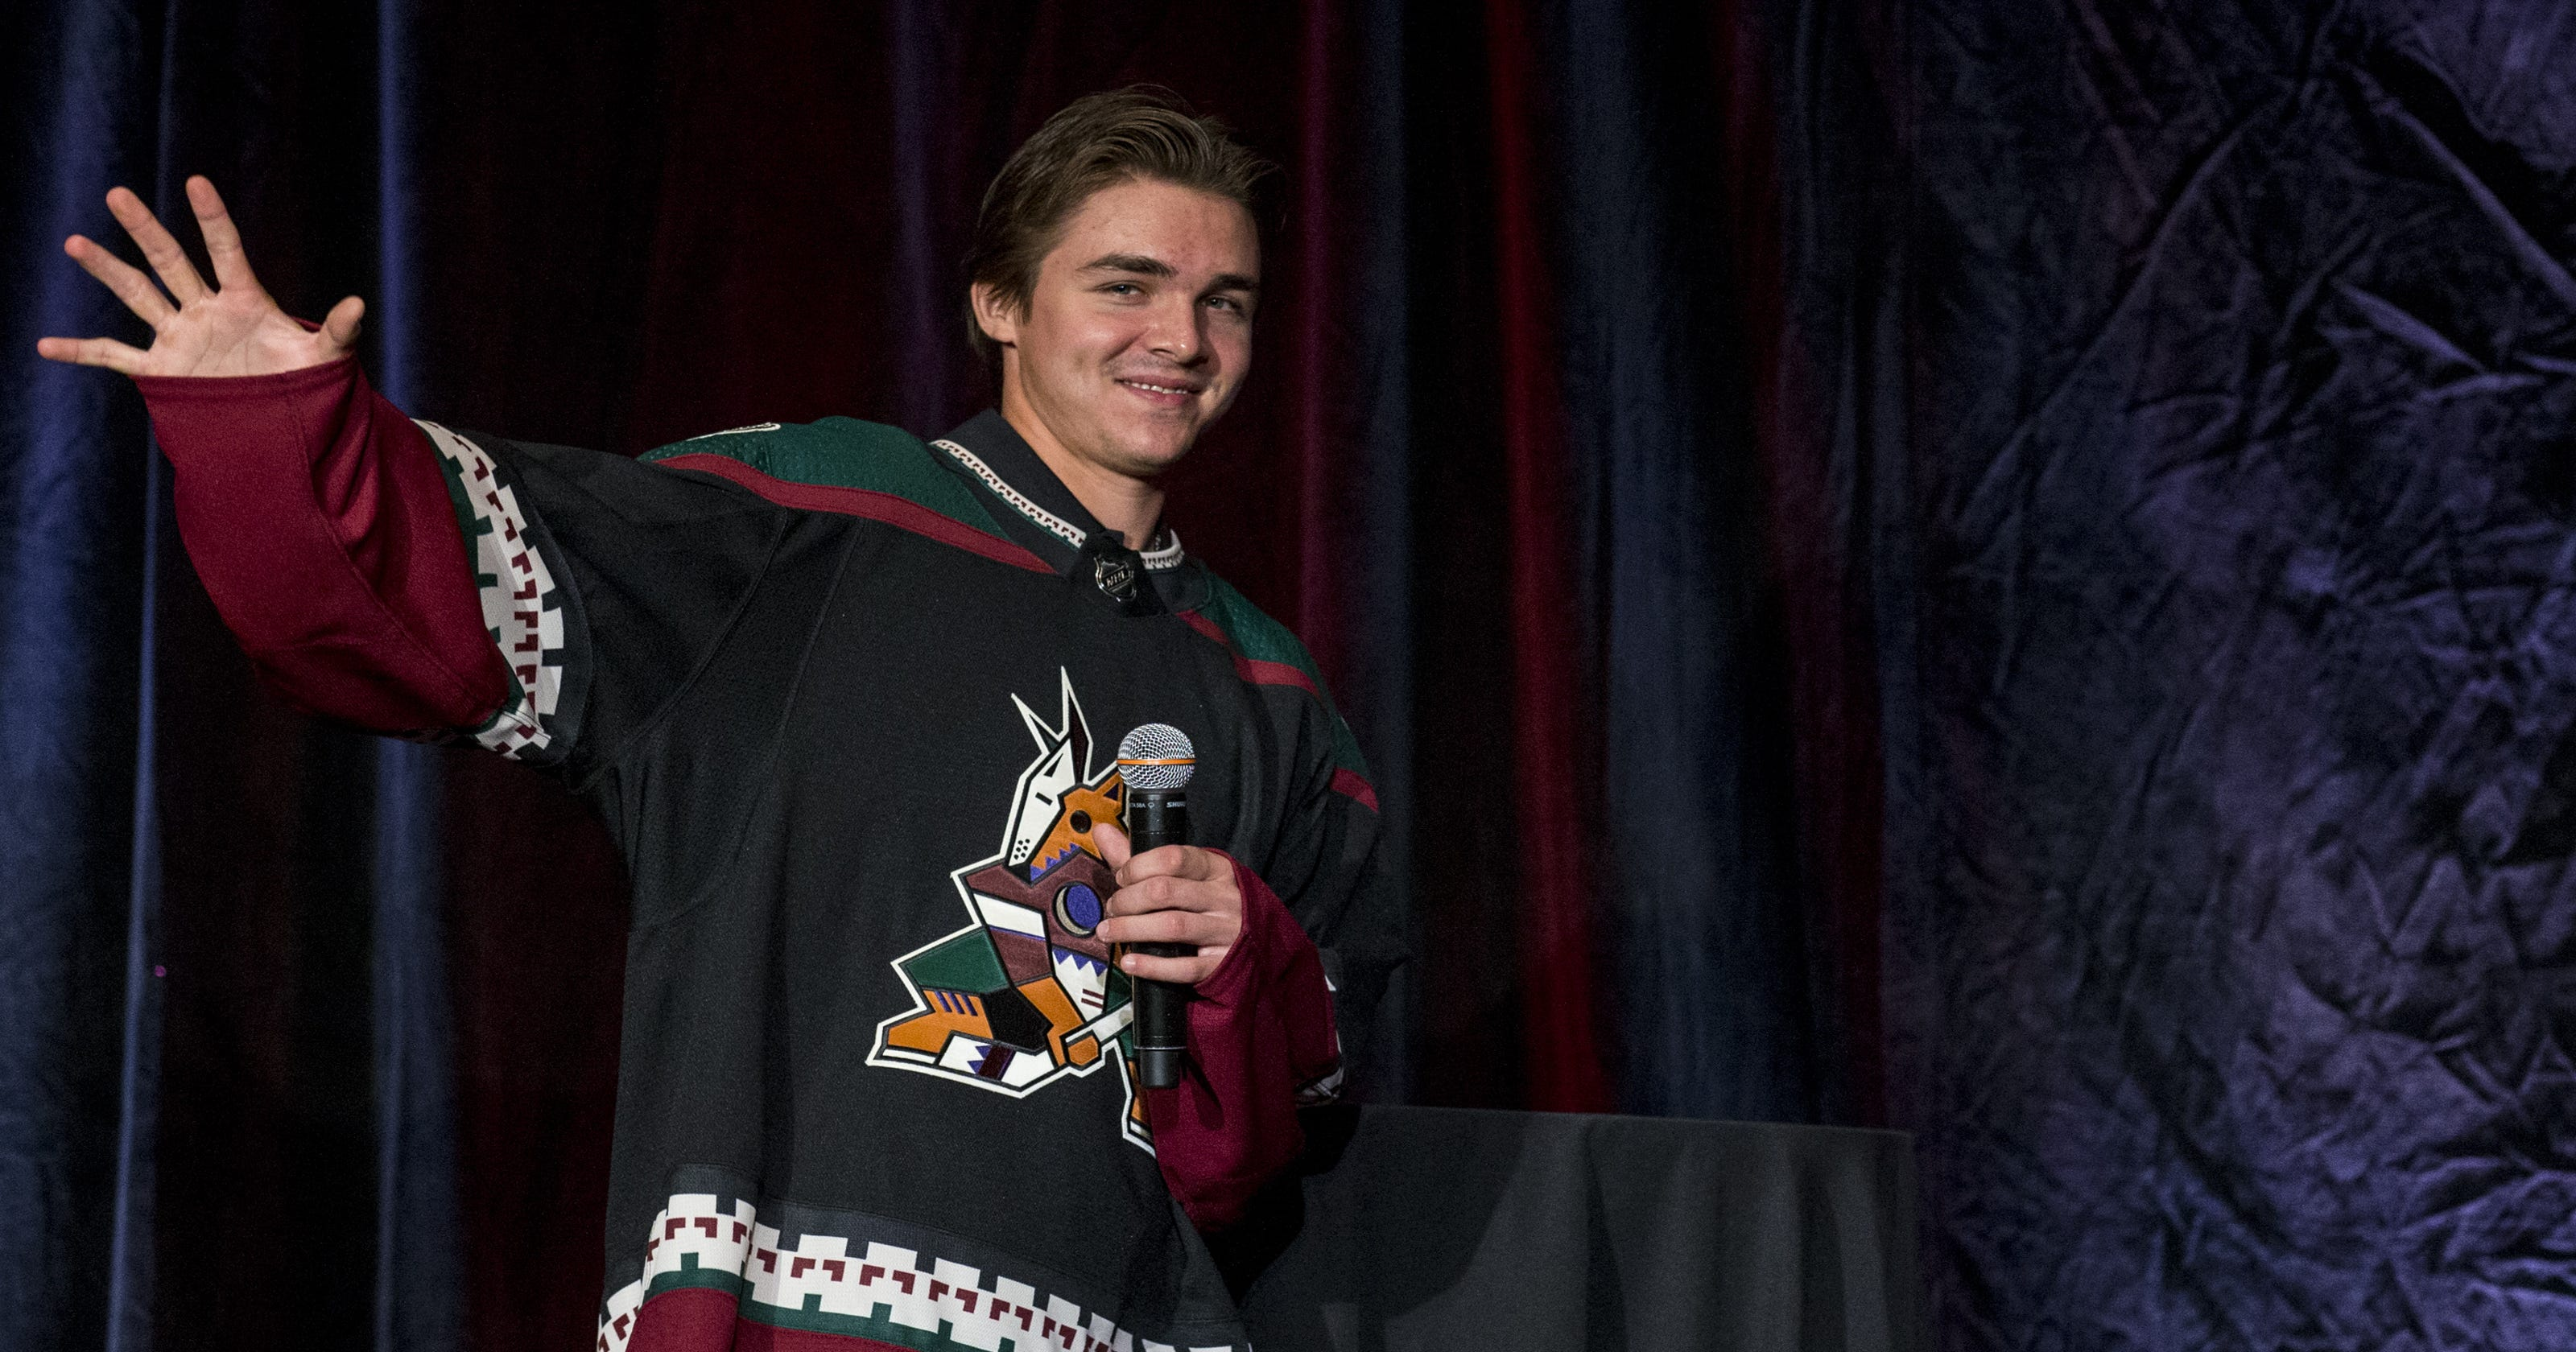 a40a26e7d Arizona Coyotes to bring back Kachina sweater as third jersey